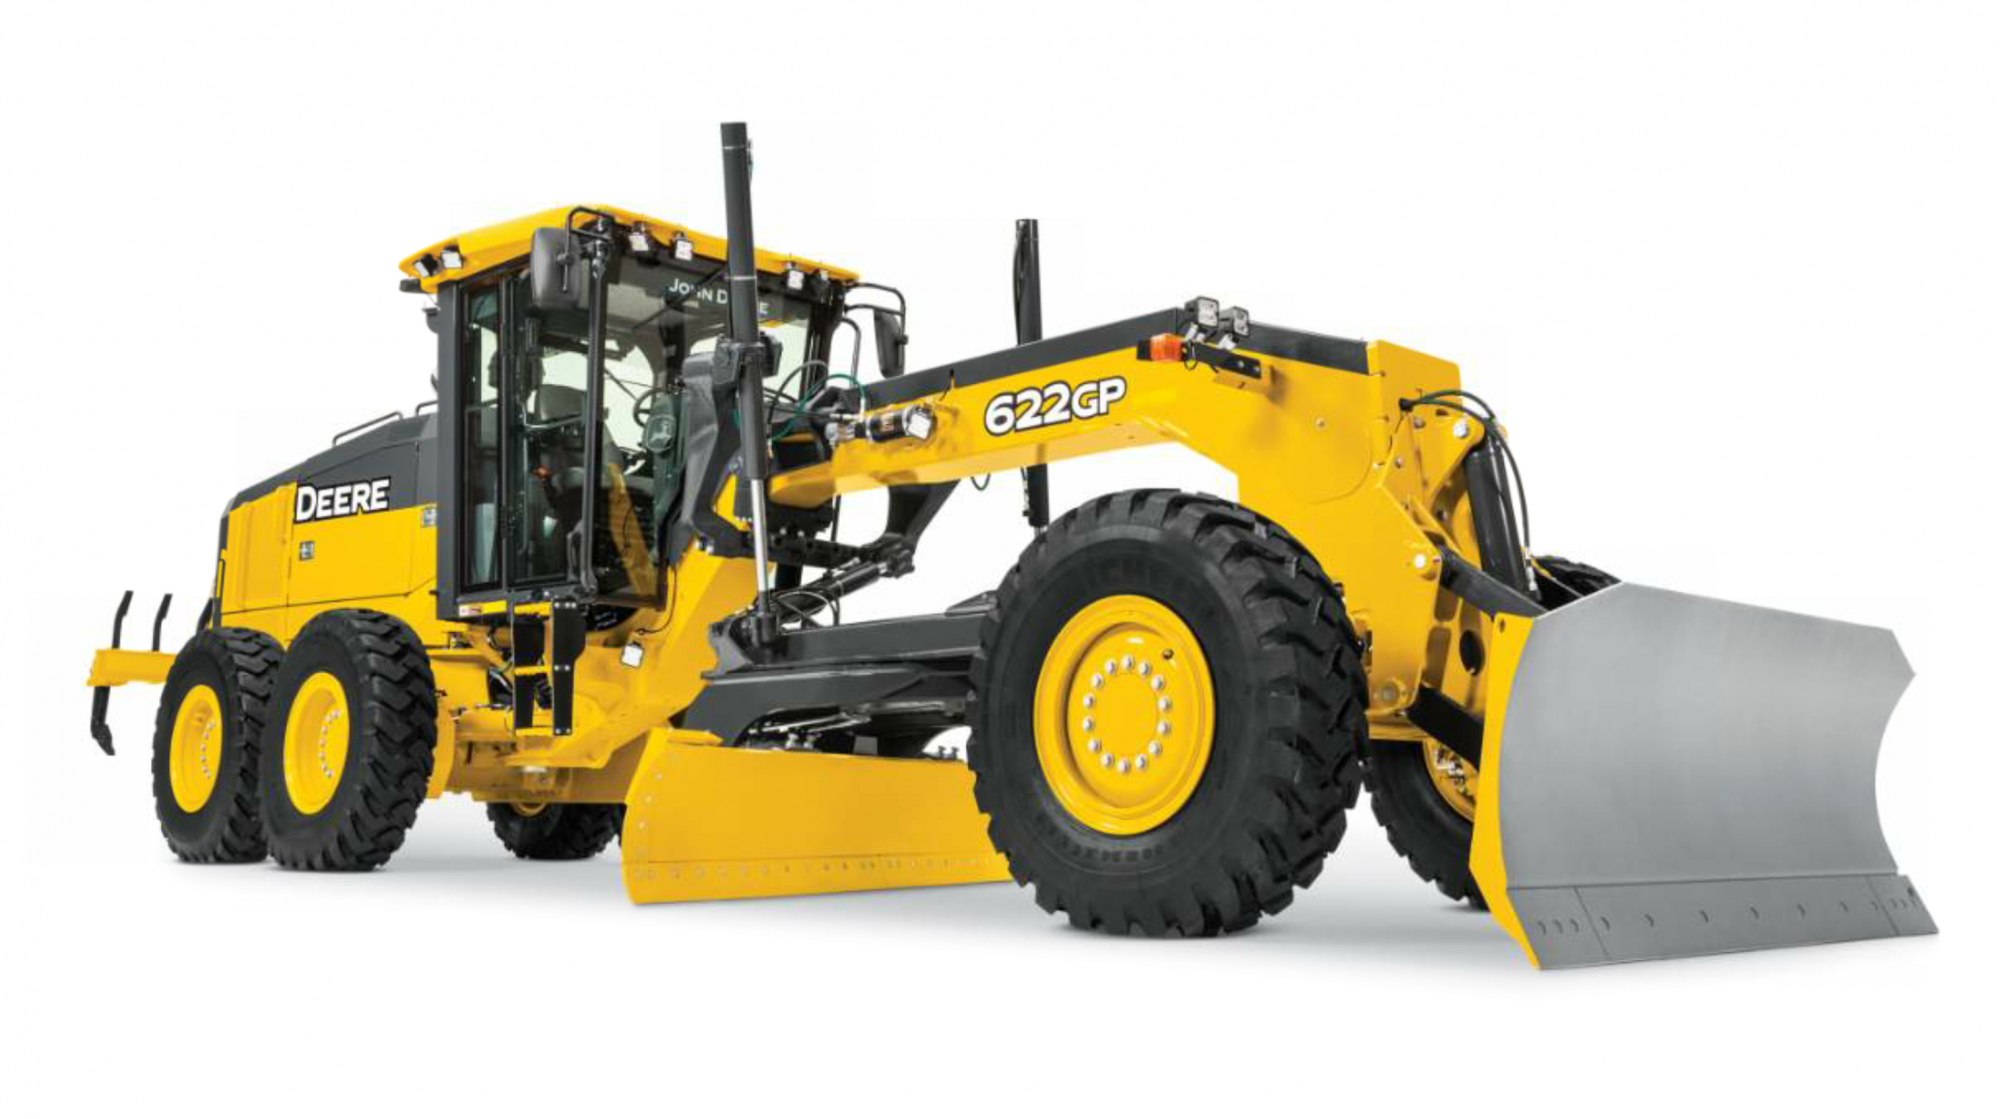 The European rollout of John Deere earthmoving equipment focuses on two G-Series motor graders. The 622GP features a 12-foot moldboard and operates at a weight of 42,060 pounds.